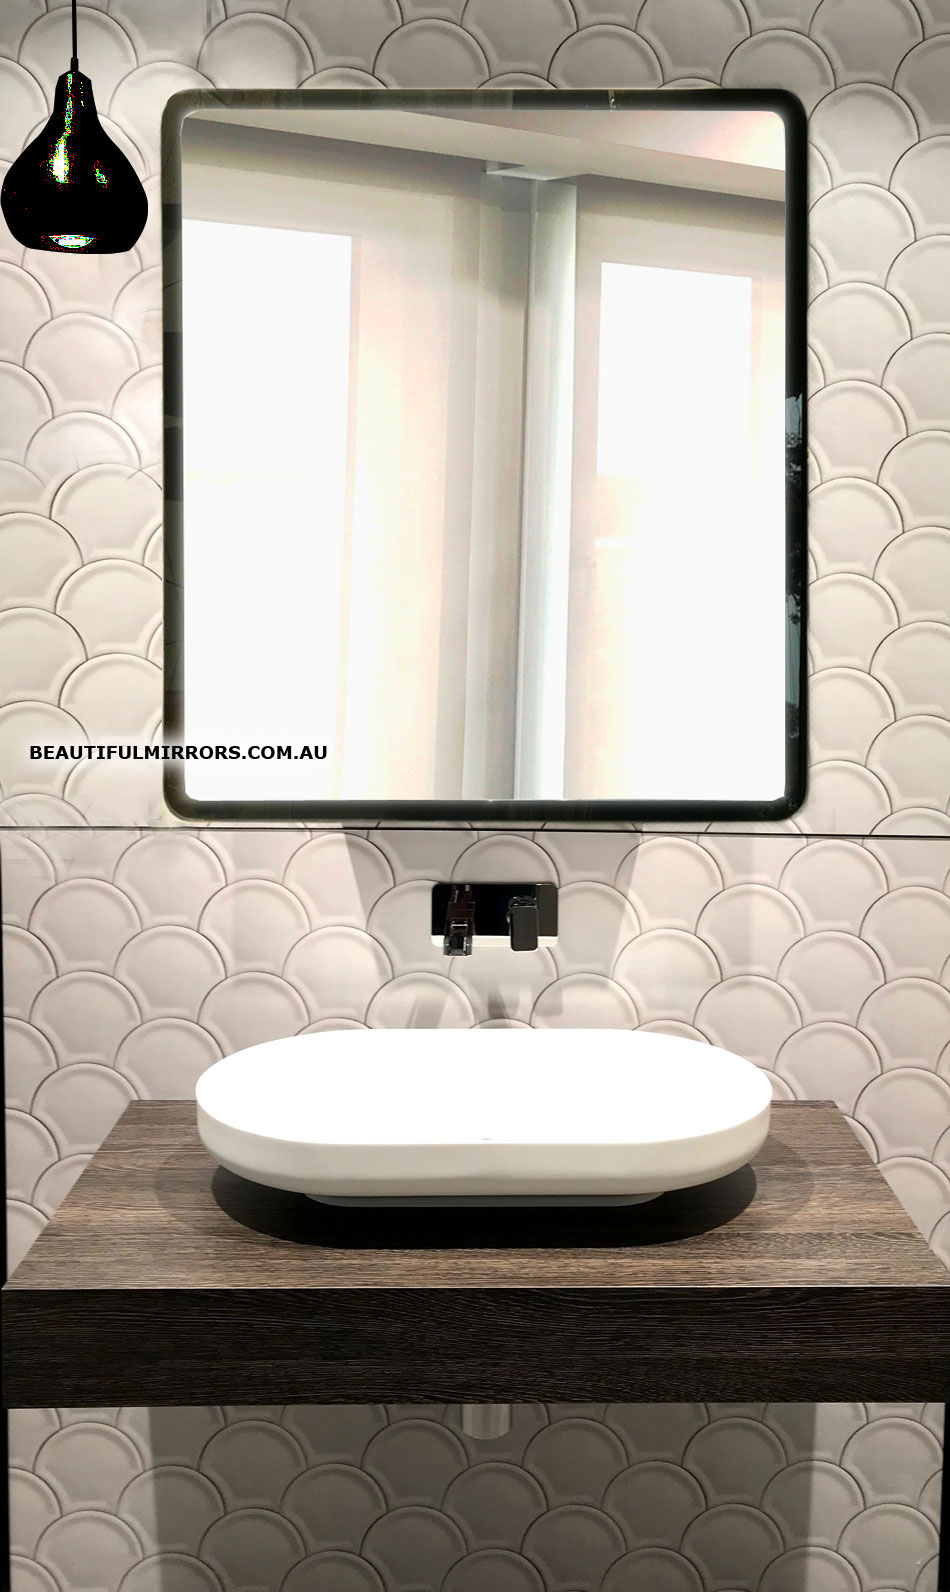 Beautiful mirrors - Bathroom Mirrors Melbourne Malvern .. Medicine ...